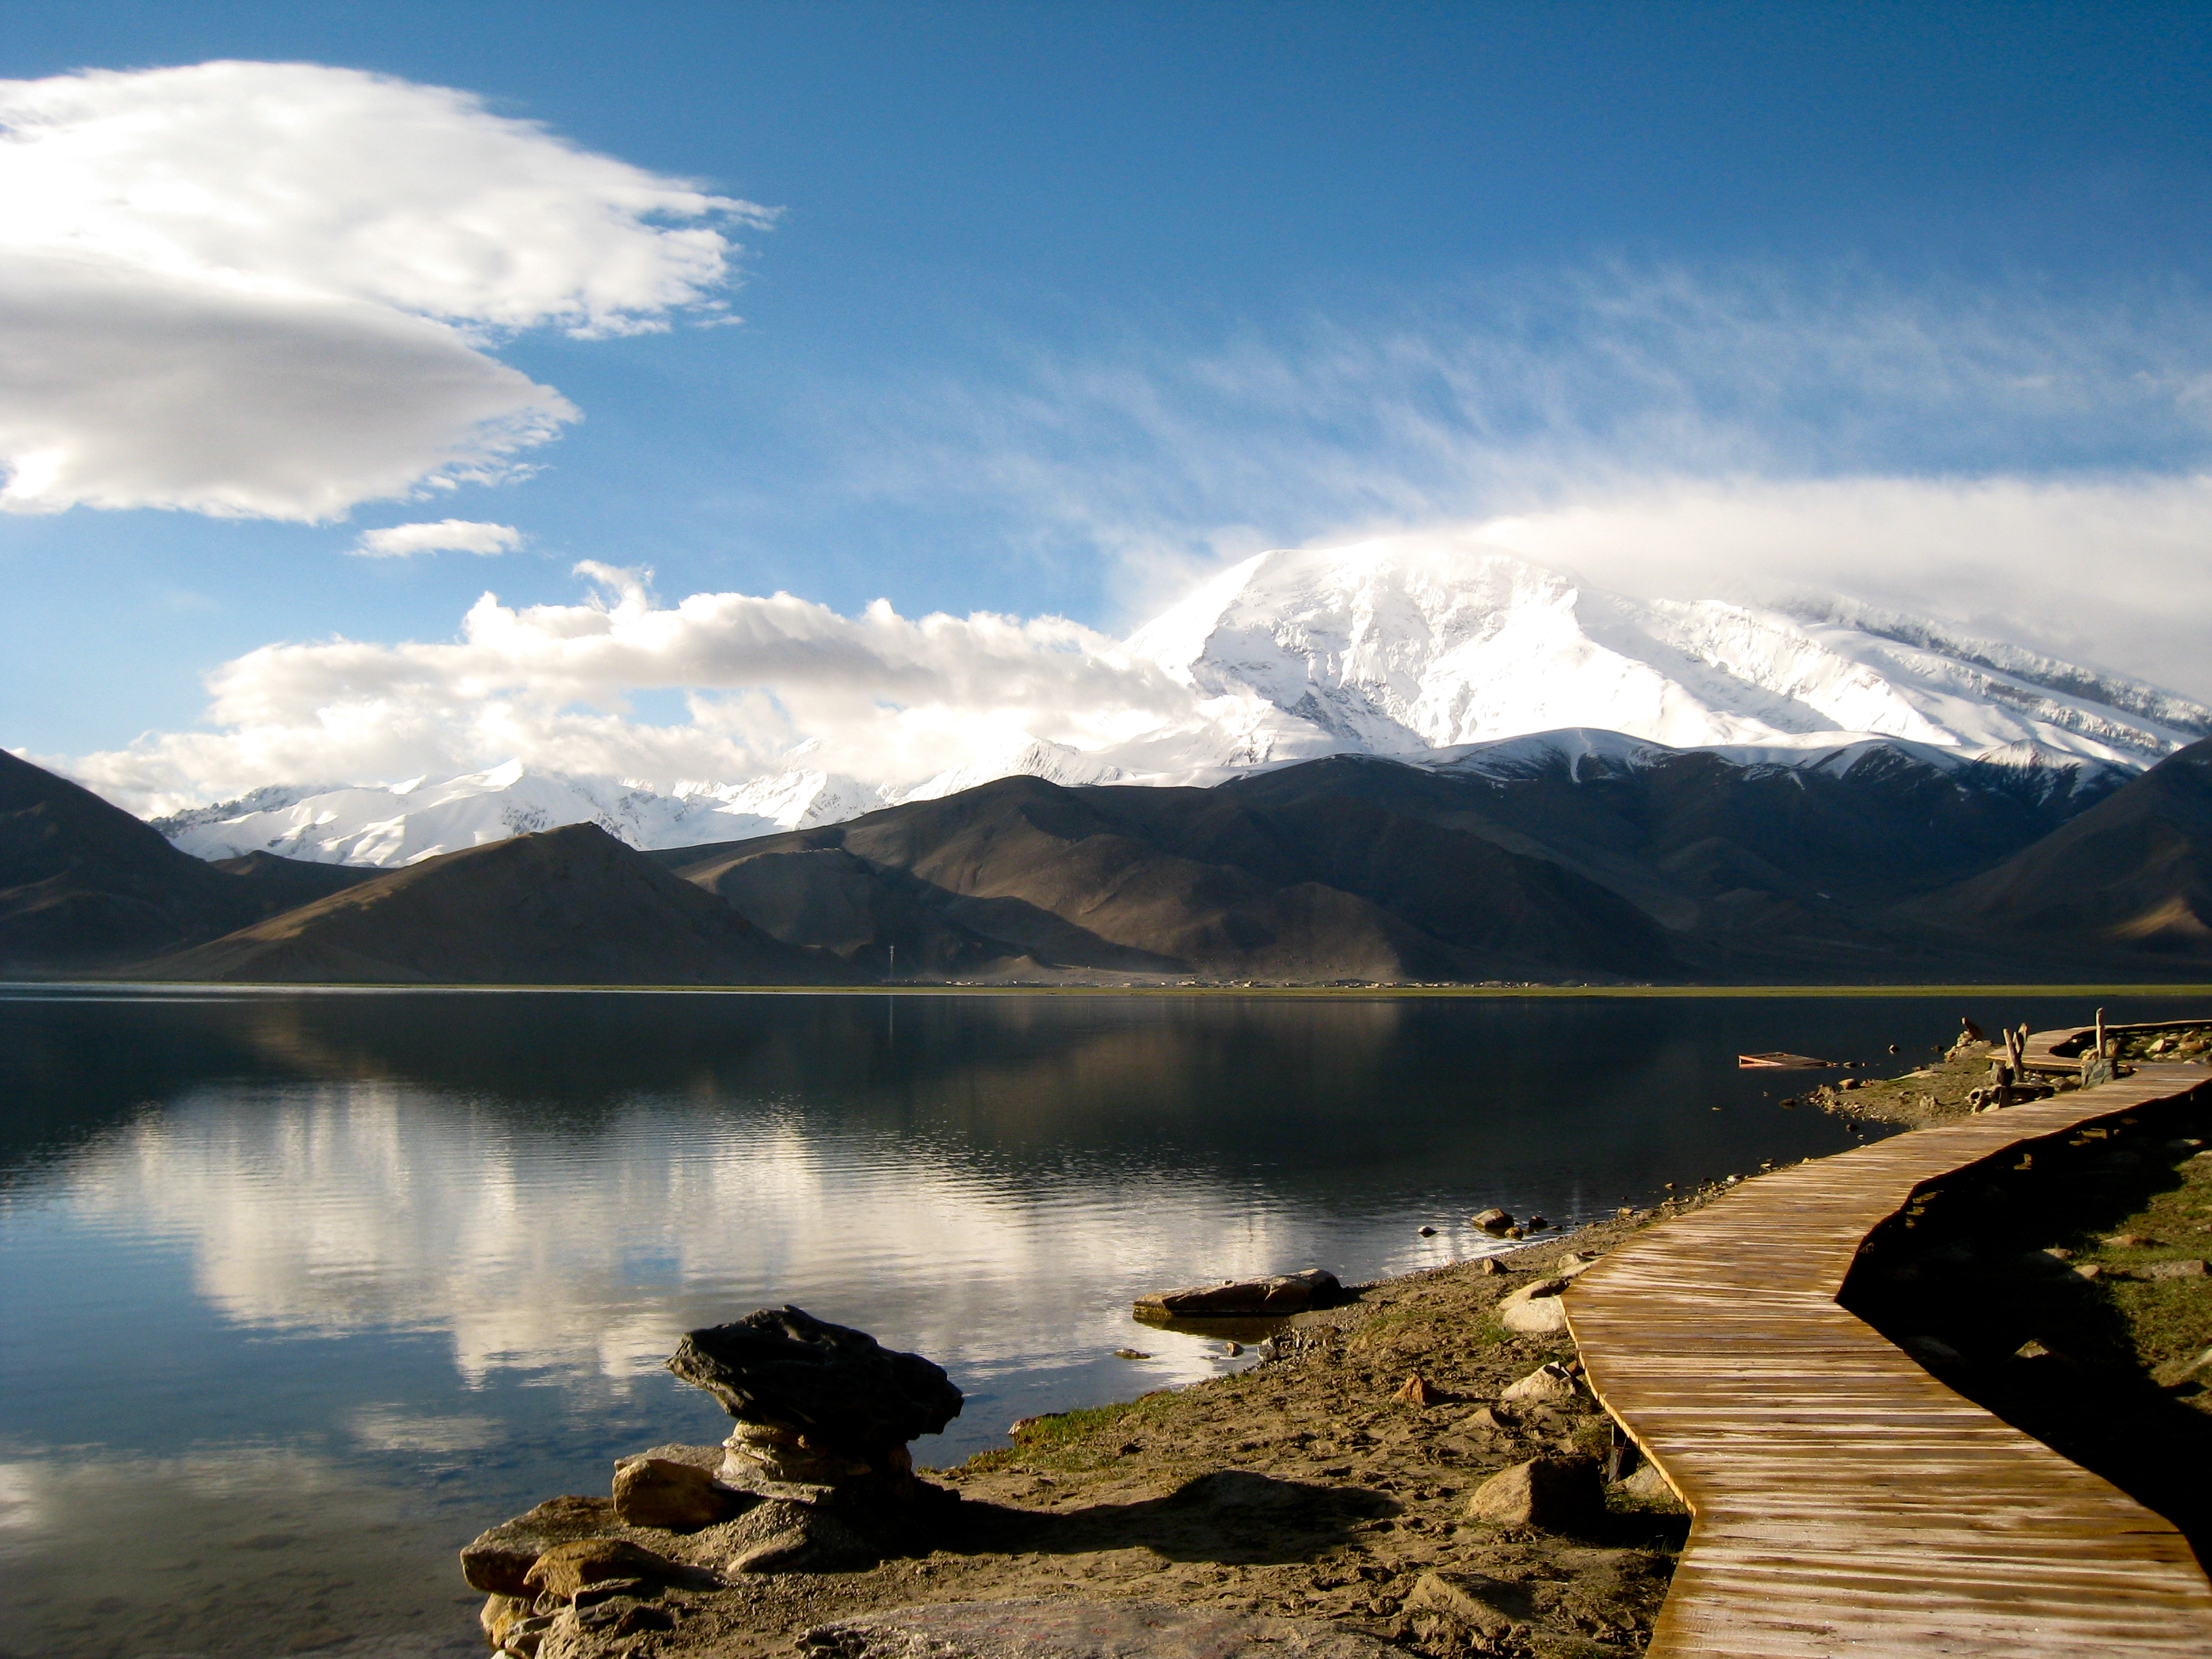 Karakul Lake Permit Clouds Karakul Lake